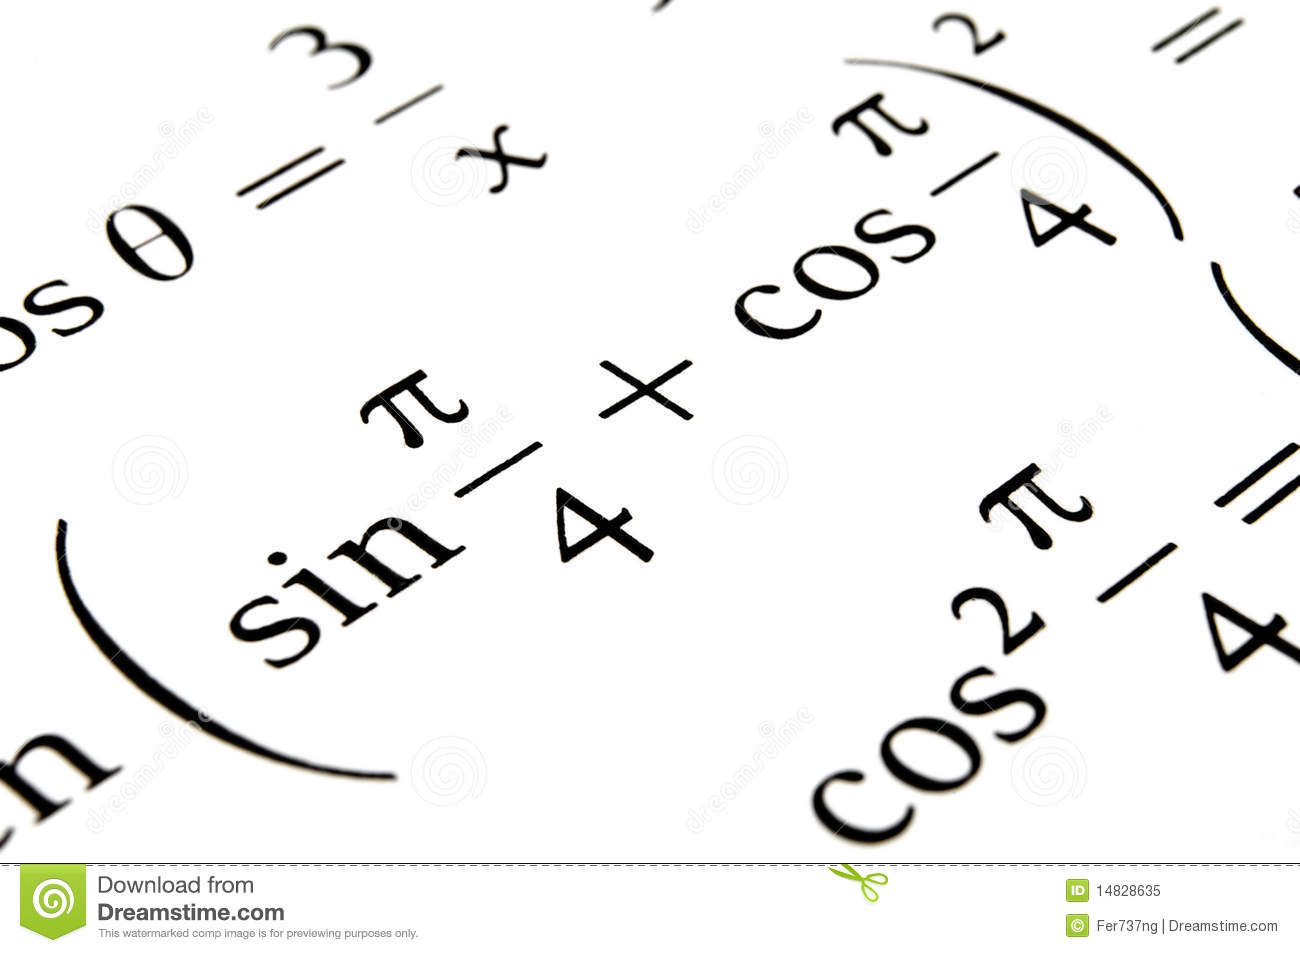 Algebra Formulas Close Up. Royalty Free Stock Photo